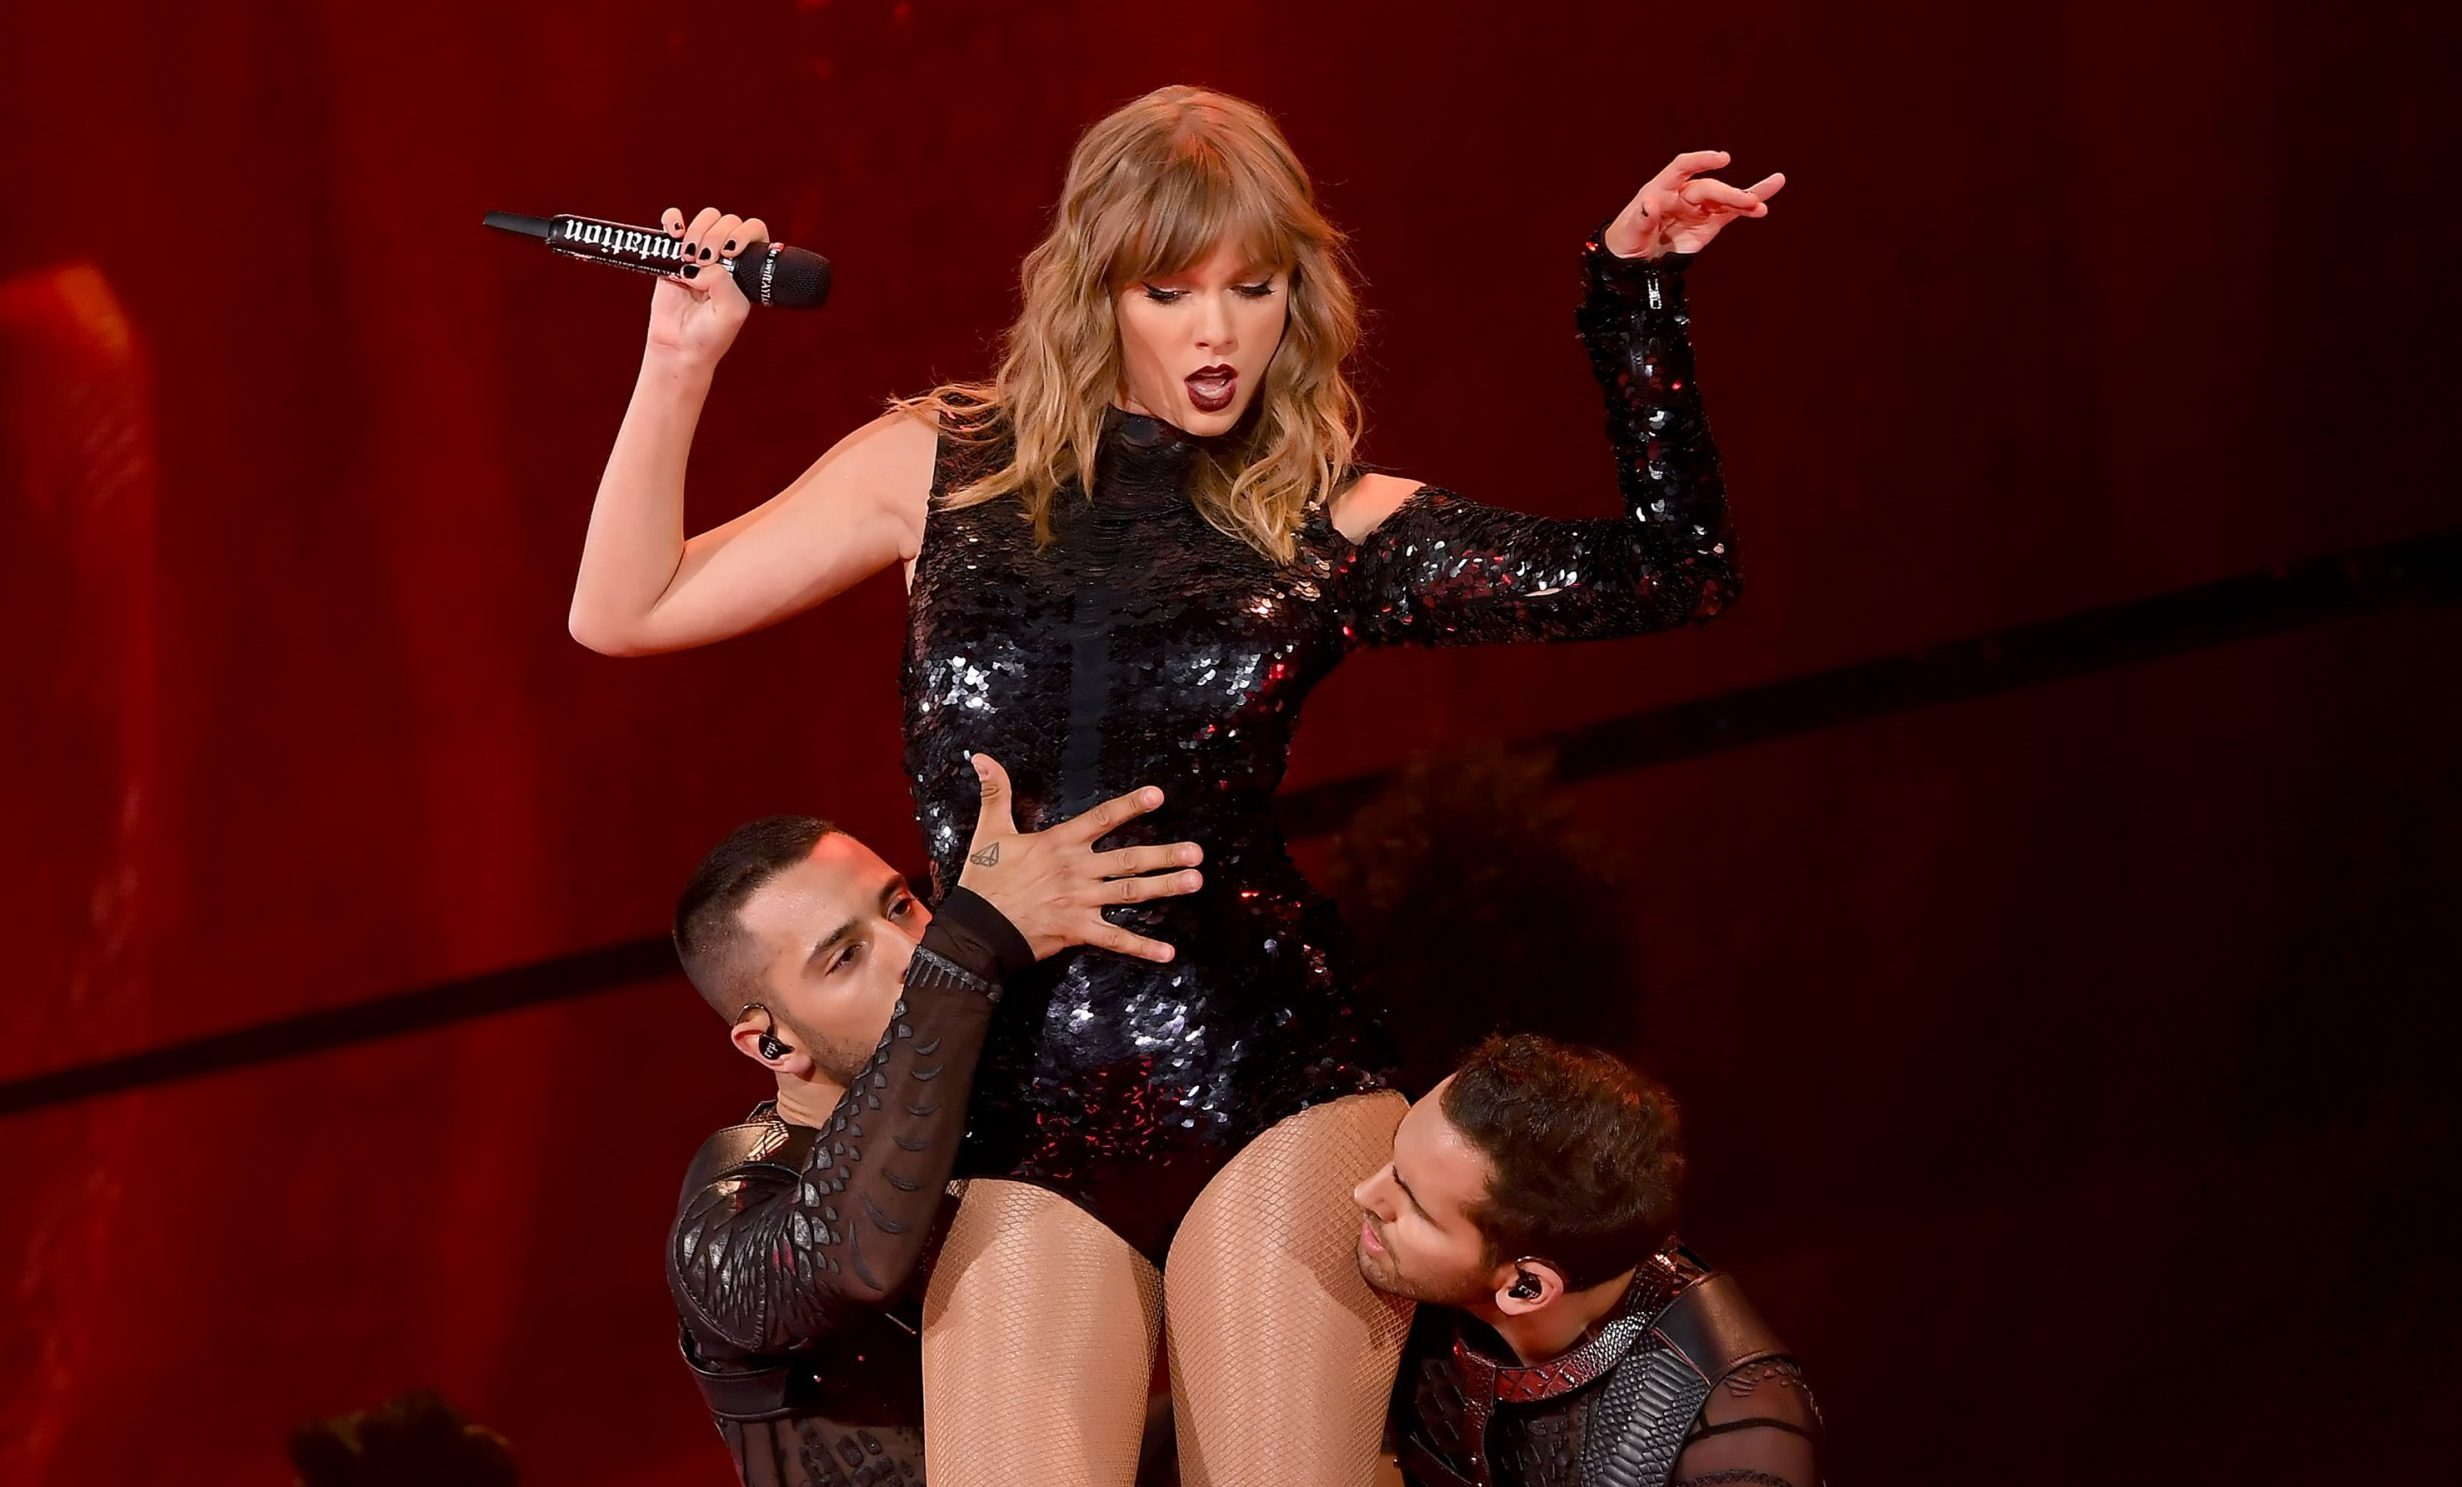 Giant snakes, oldies but goldies, and famous faces: Seven things to watch out for in Taylor Swift's Reputation tour film